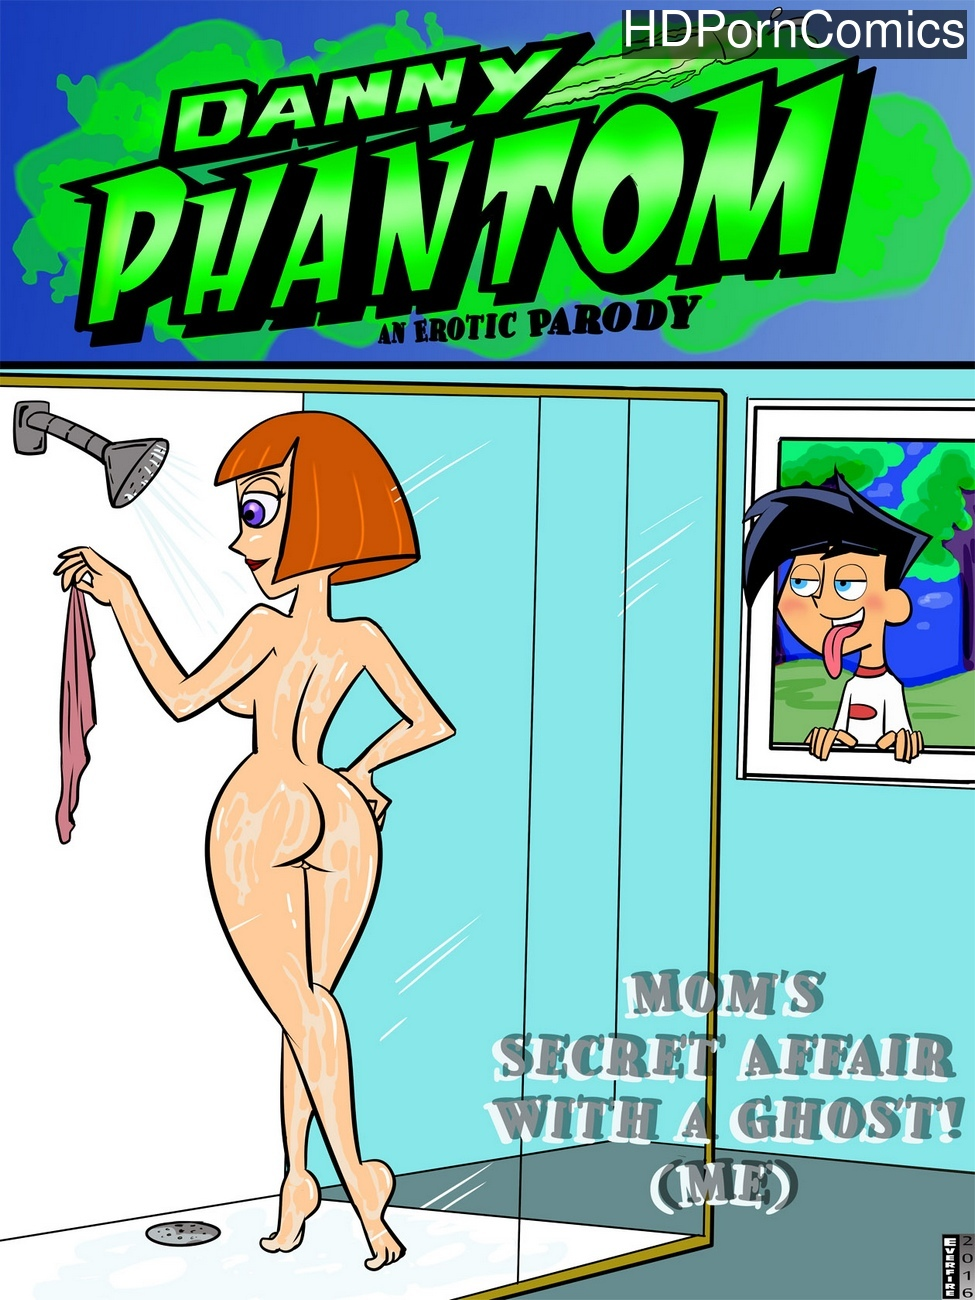 Danny-Phantom-An-Erotic-Parody 1 free porn comics